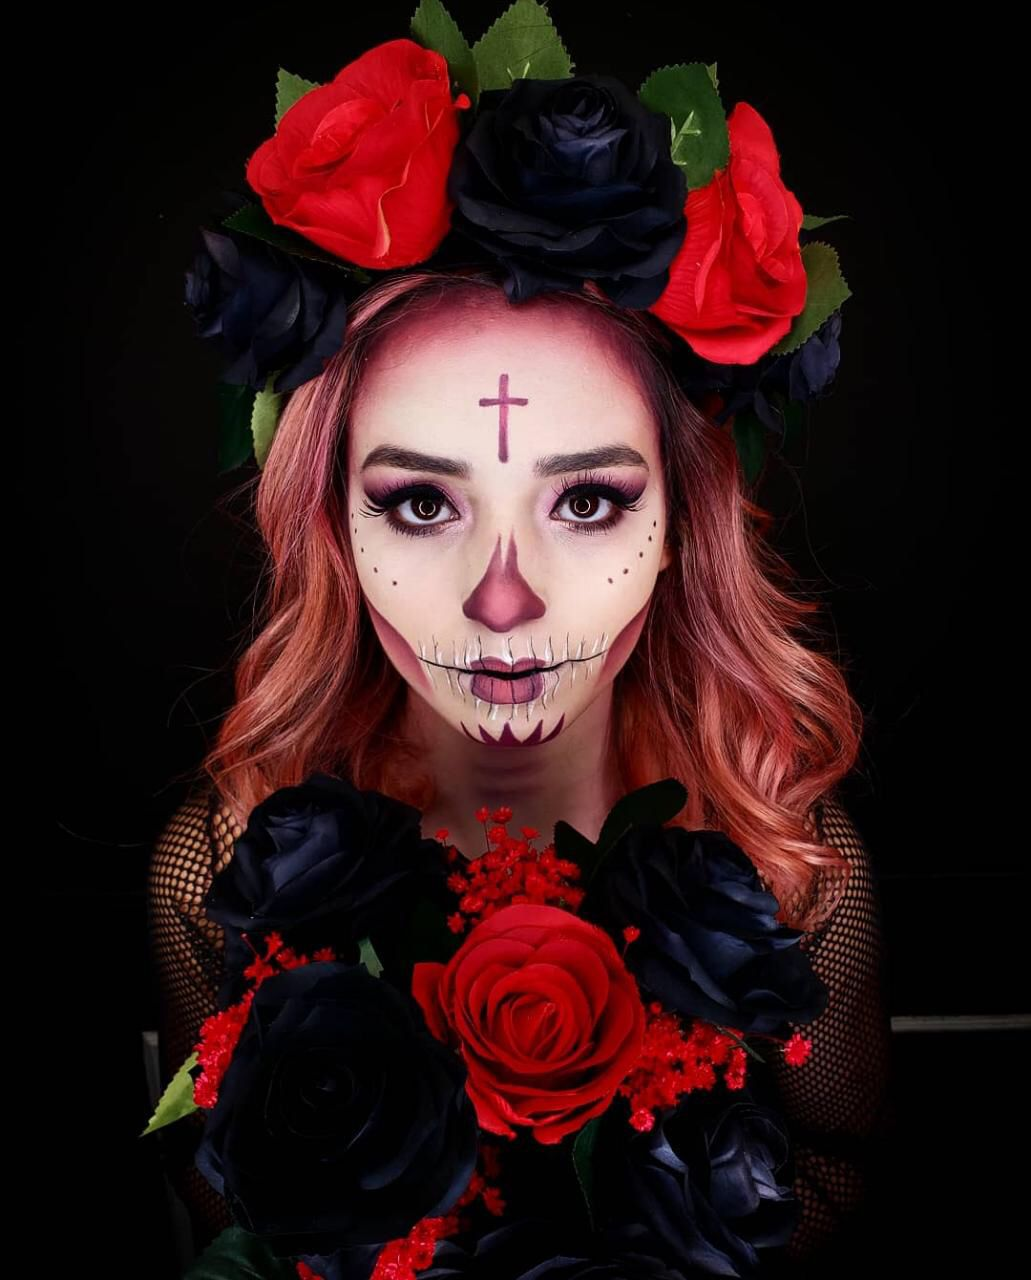 Pin by Laura Haberman on Day of the dead ladies